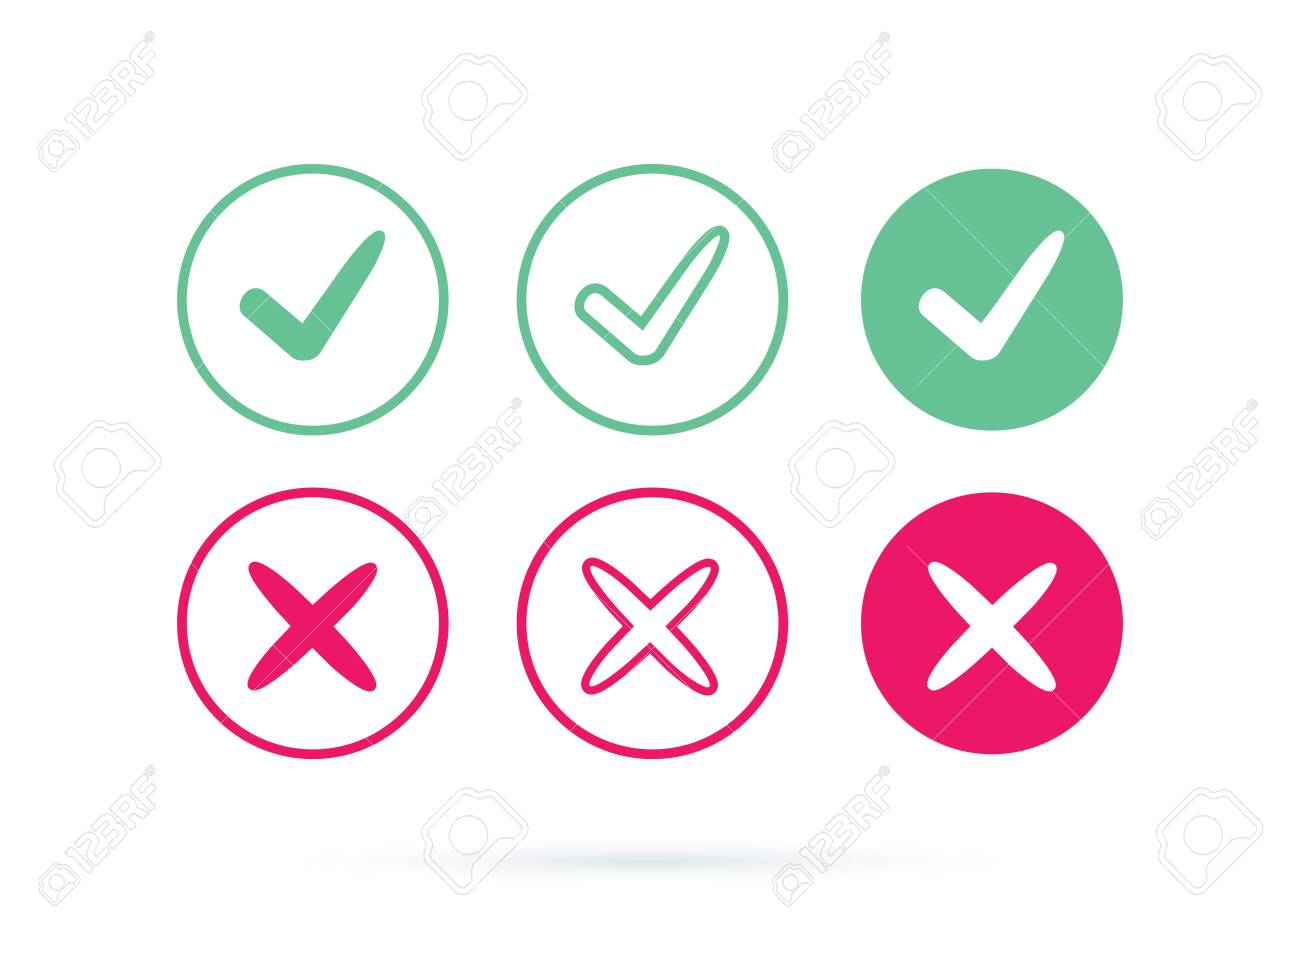 Check mark logo vector or icon. Tick symbol in green color illustration. Accept okey symbol for approvement or cheklist design. Choice minimalistic pictogram. Positive and negative checkmarks for web - 122045045